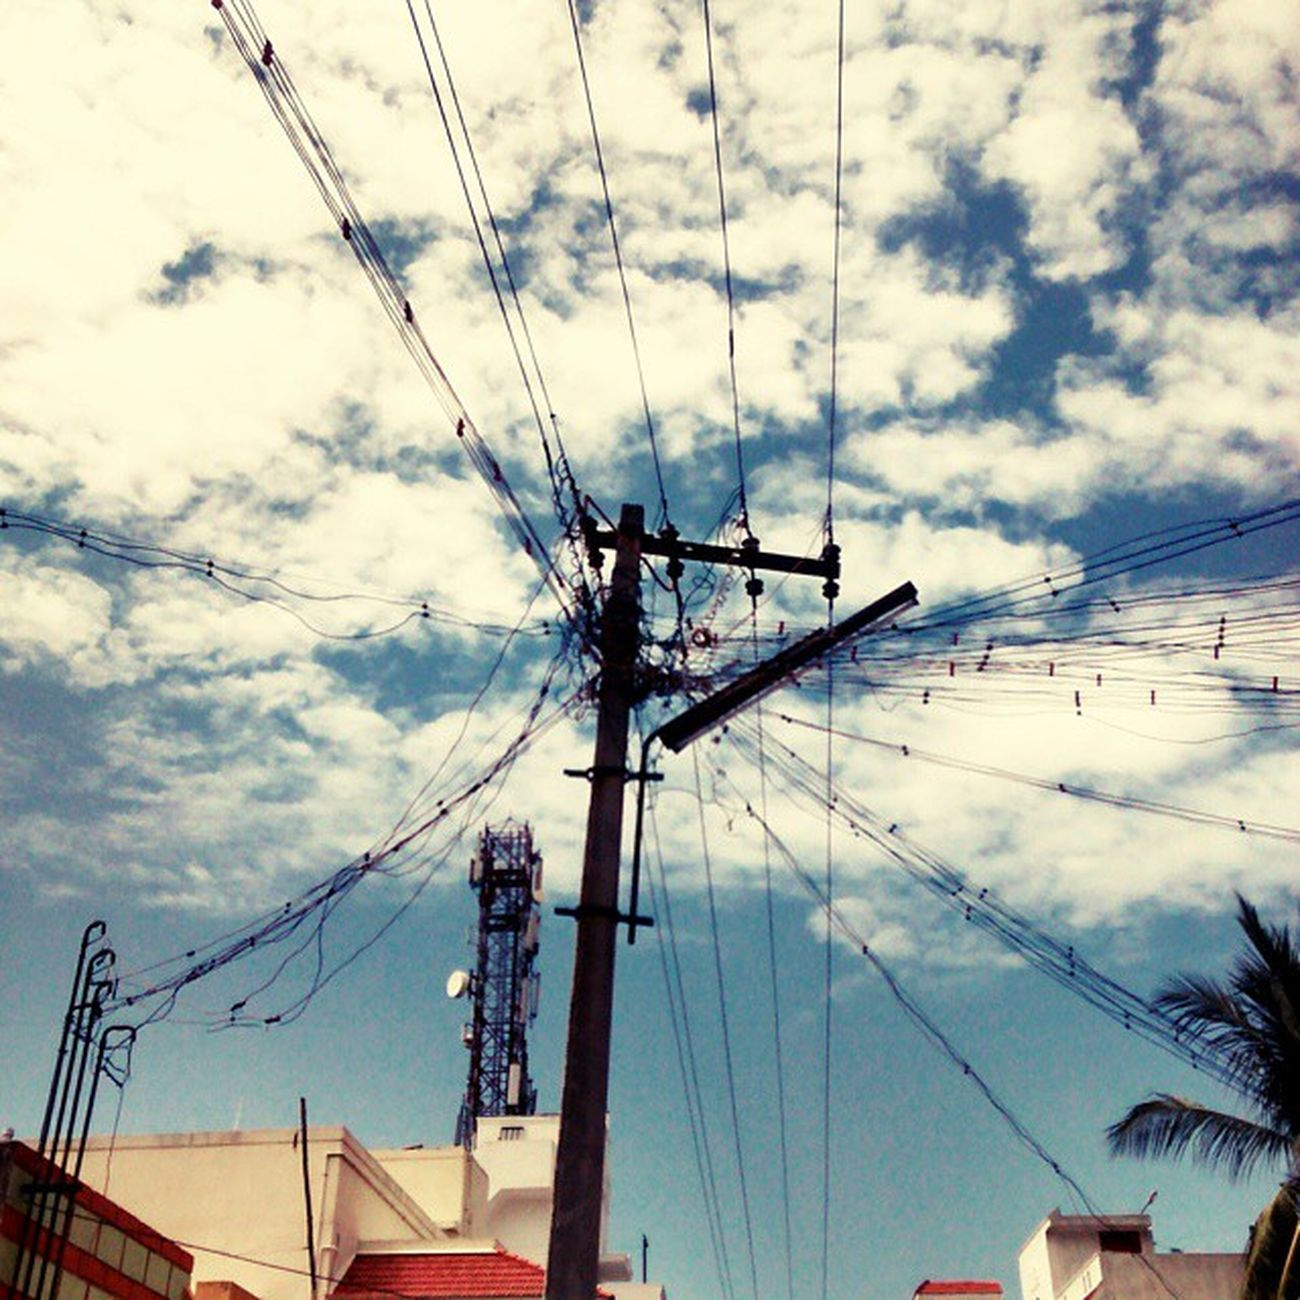 The 'Apply Kirchoff's law' moment! Kirchoffslaw Randompole Cloudybluesky CoolWeather Vitvellore Tamilnadu India